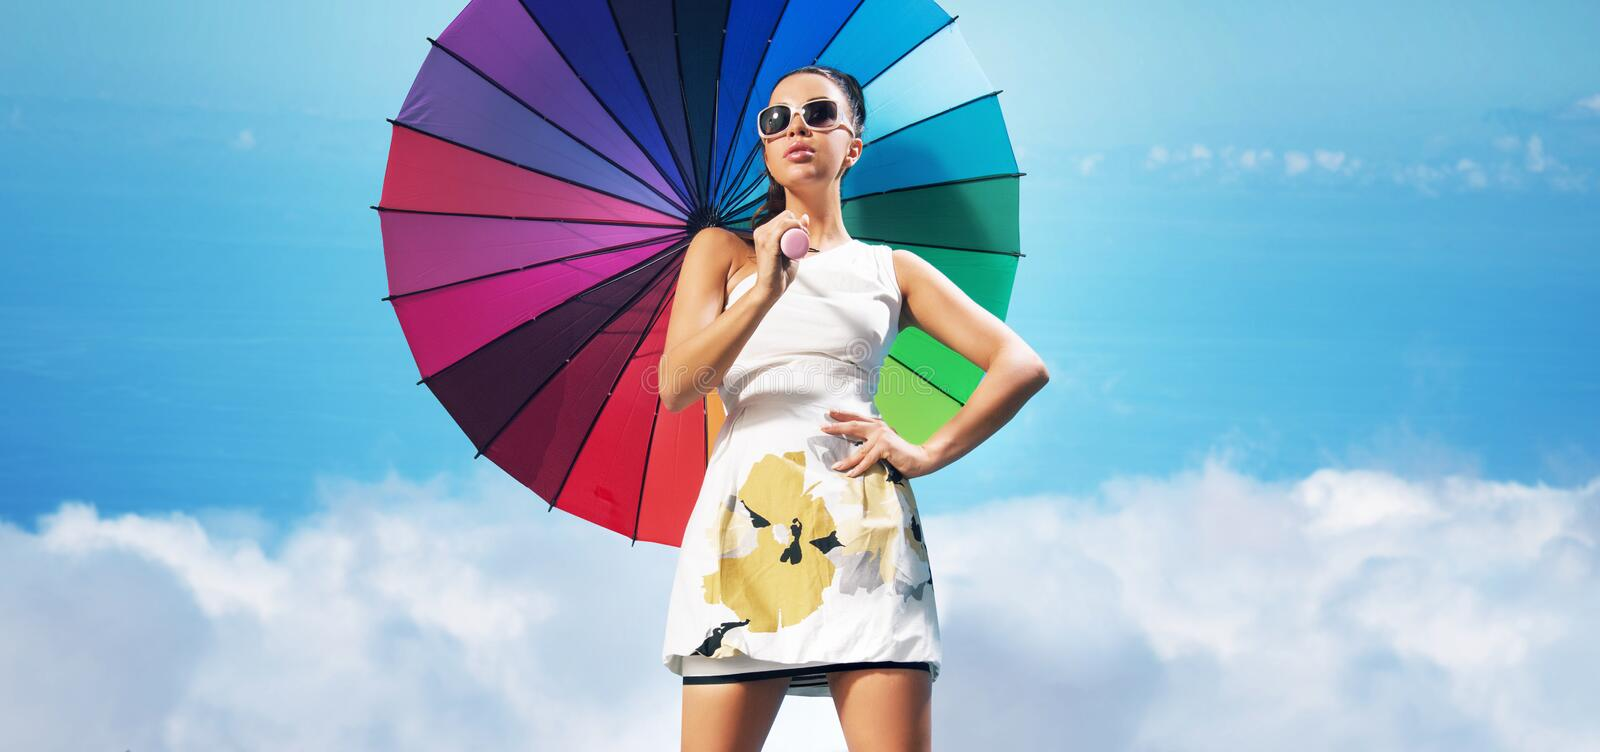 Sensual woman with the colorful umbrella royalty free stock photo